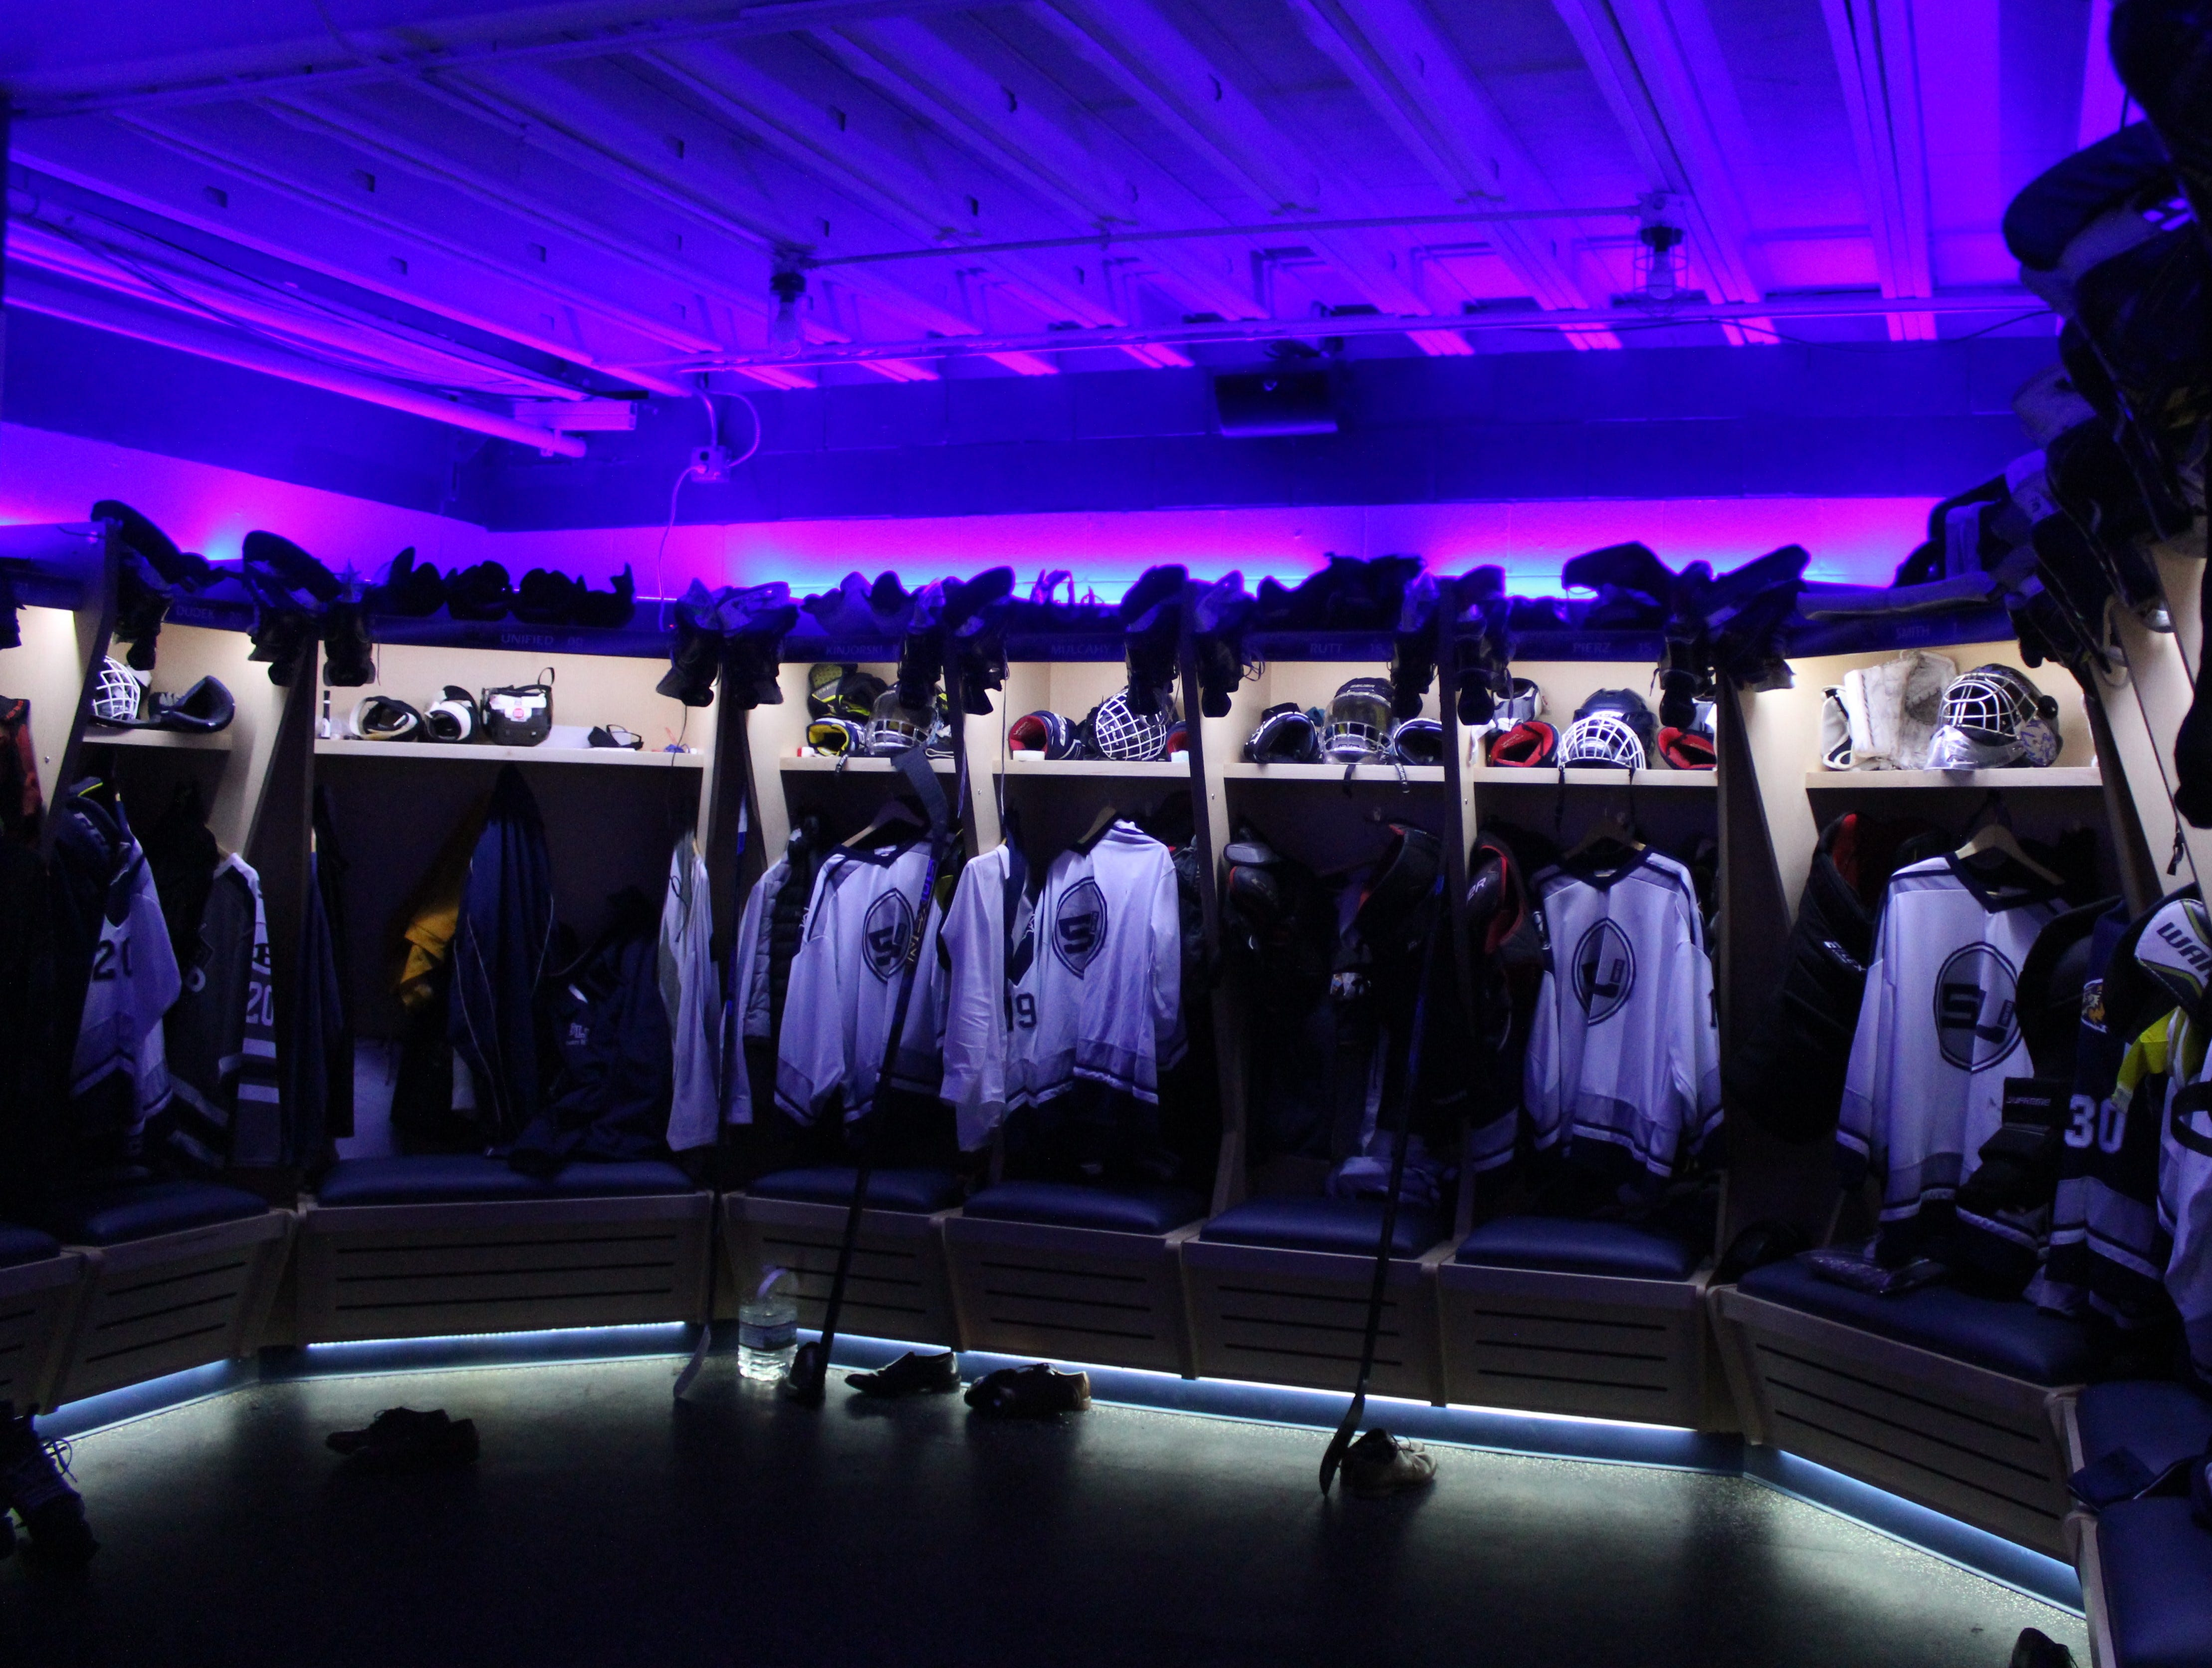 A spectacular LED lighting display system adds to the 'cool' atmosphere of South Lyon Unified's new locker room at the Kensington Valley Ice House.